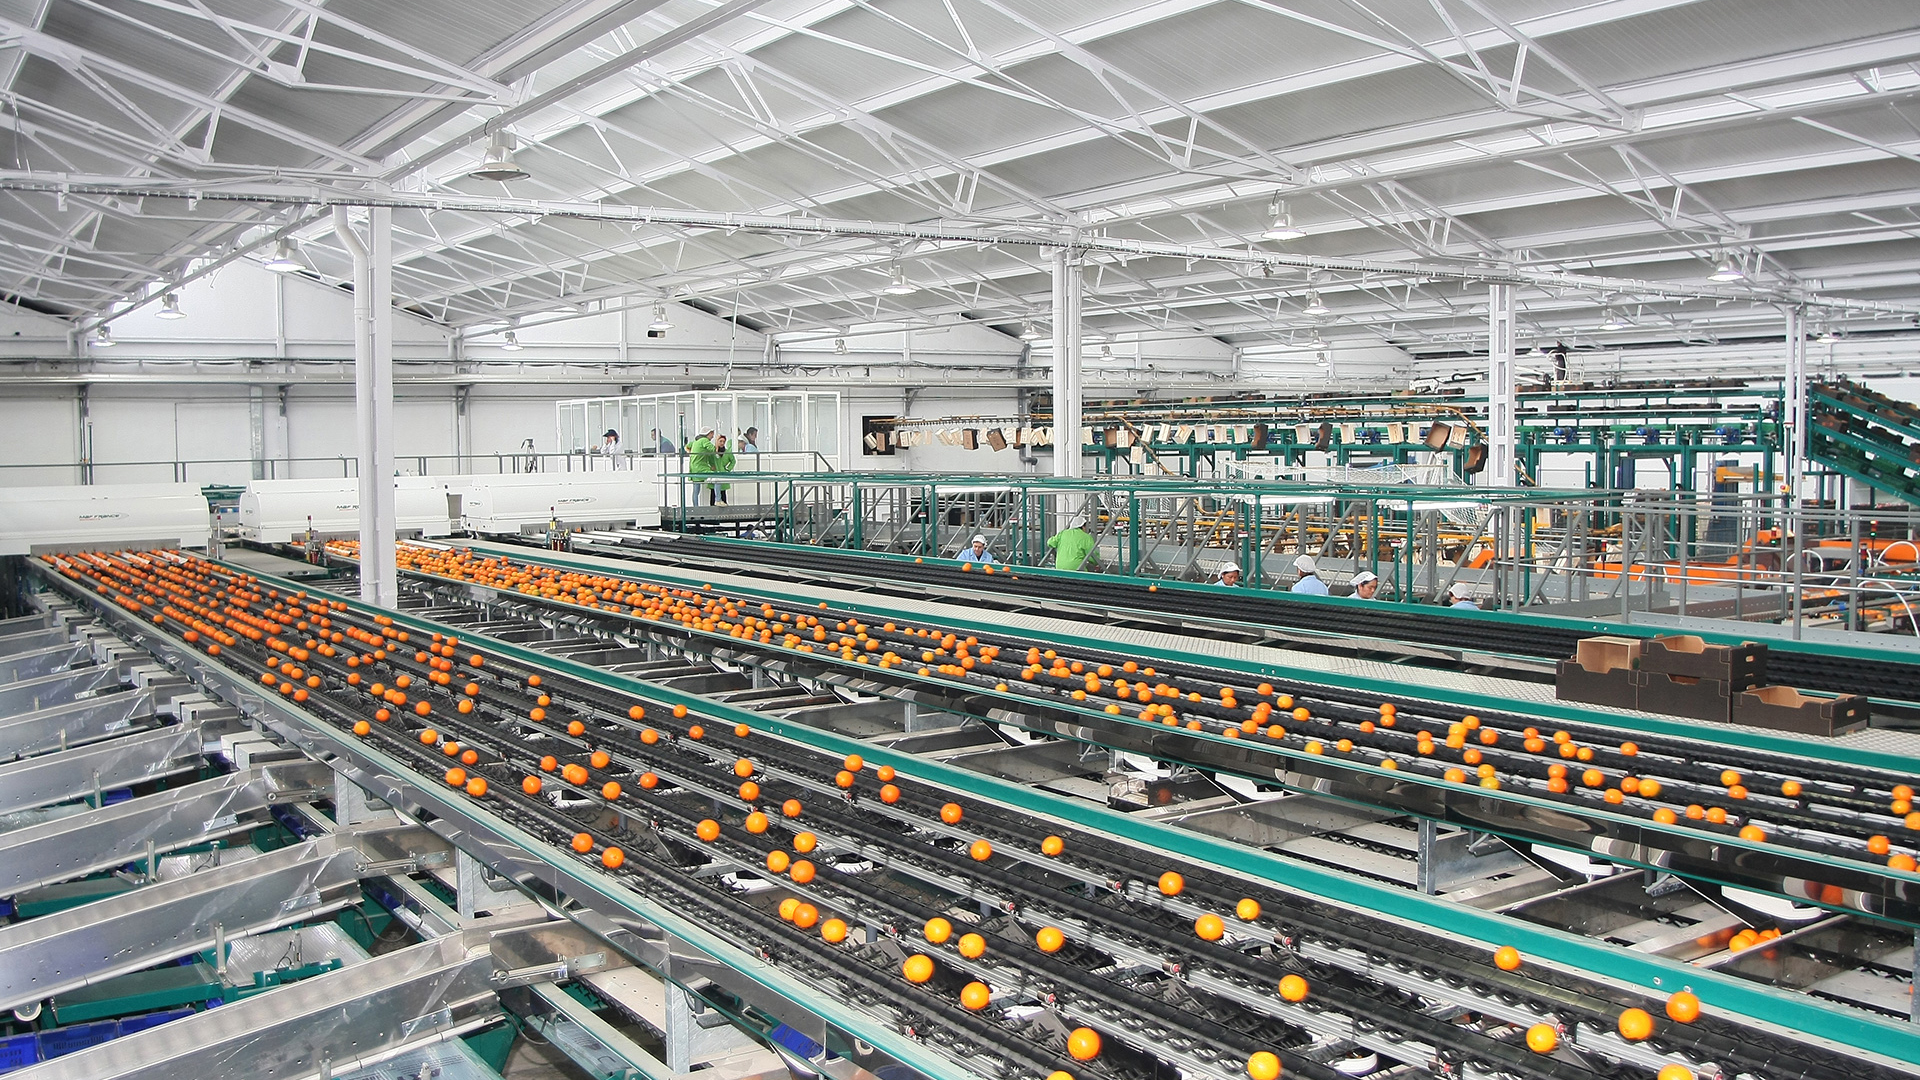 The sizing machine lets a packer in Valencia, Spain accurately grade oranges